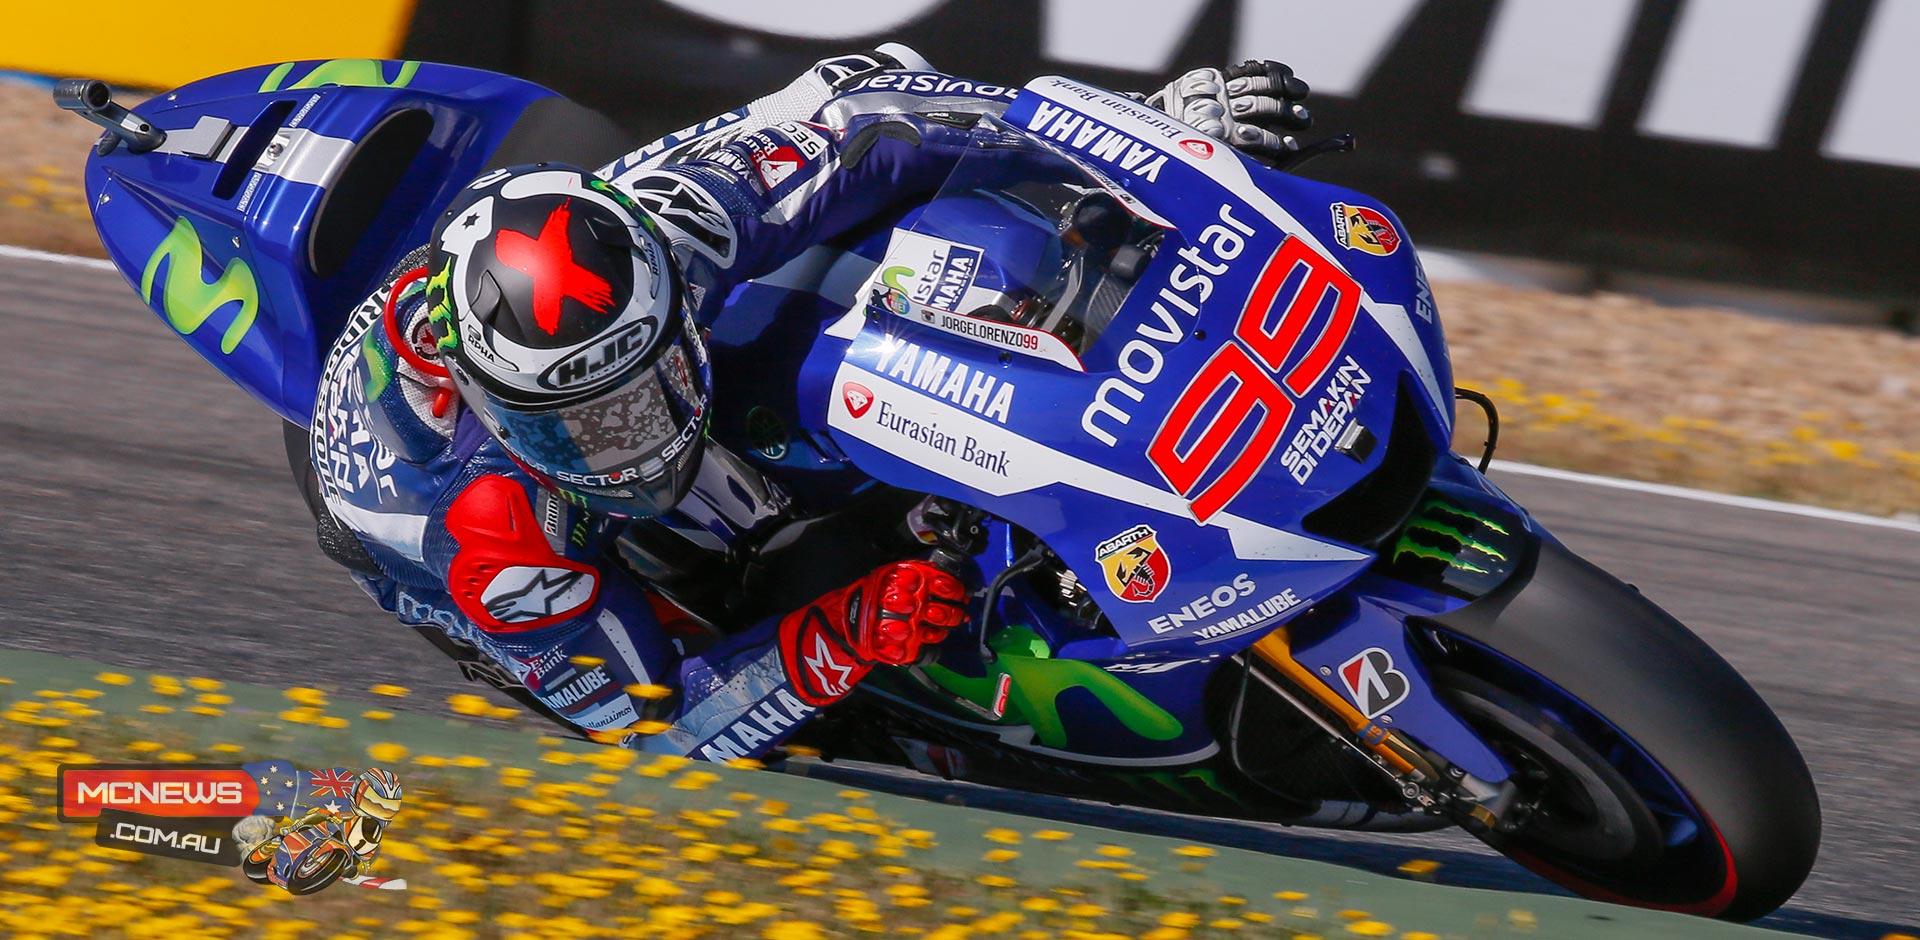 Jorge Lorenzo produced the fastest ever lap by a motorcycle around the Circuito de Jerez to take his first pole of the season